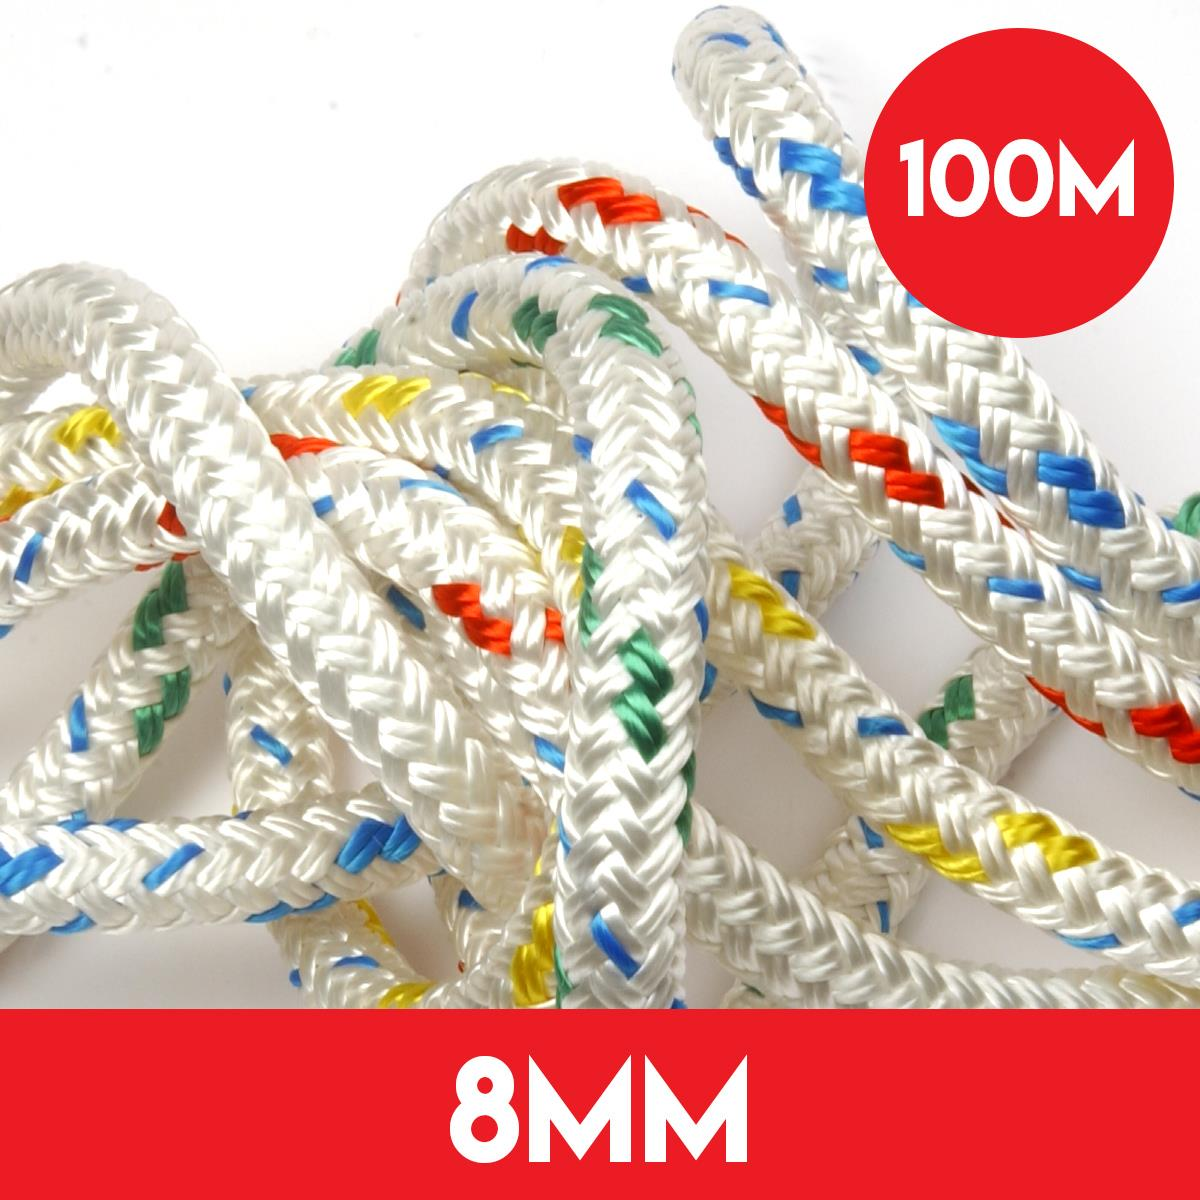 100m Reel of 8mm Polyester Braid on Braid Rope by Kingfisher